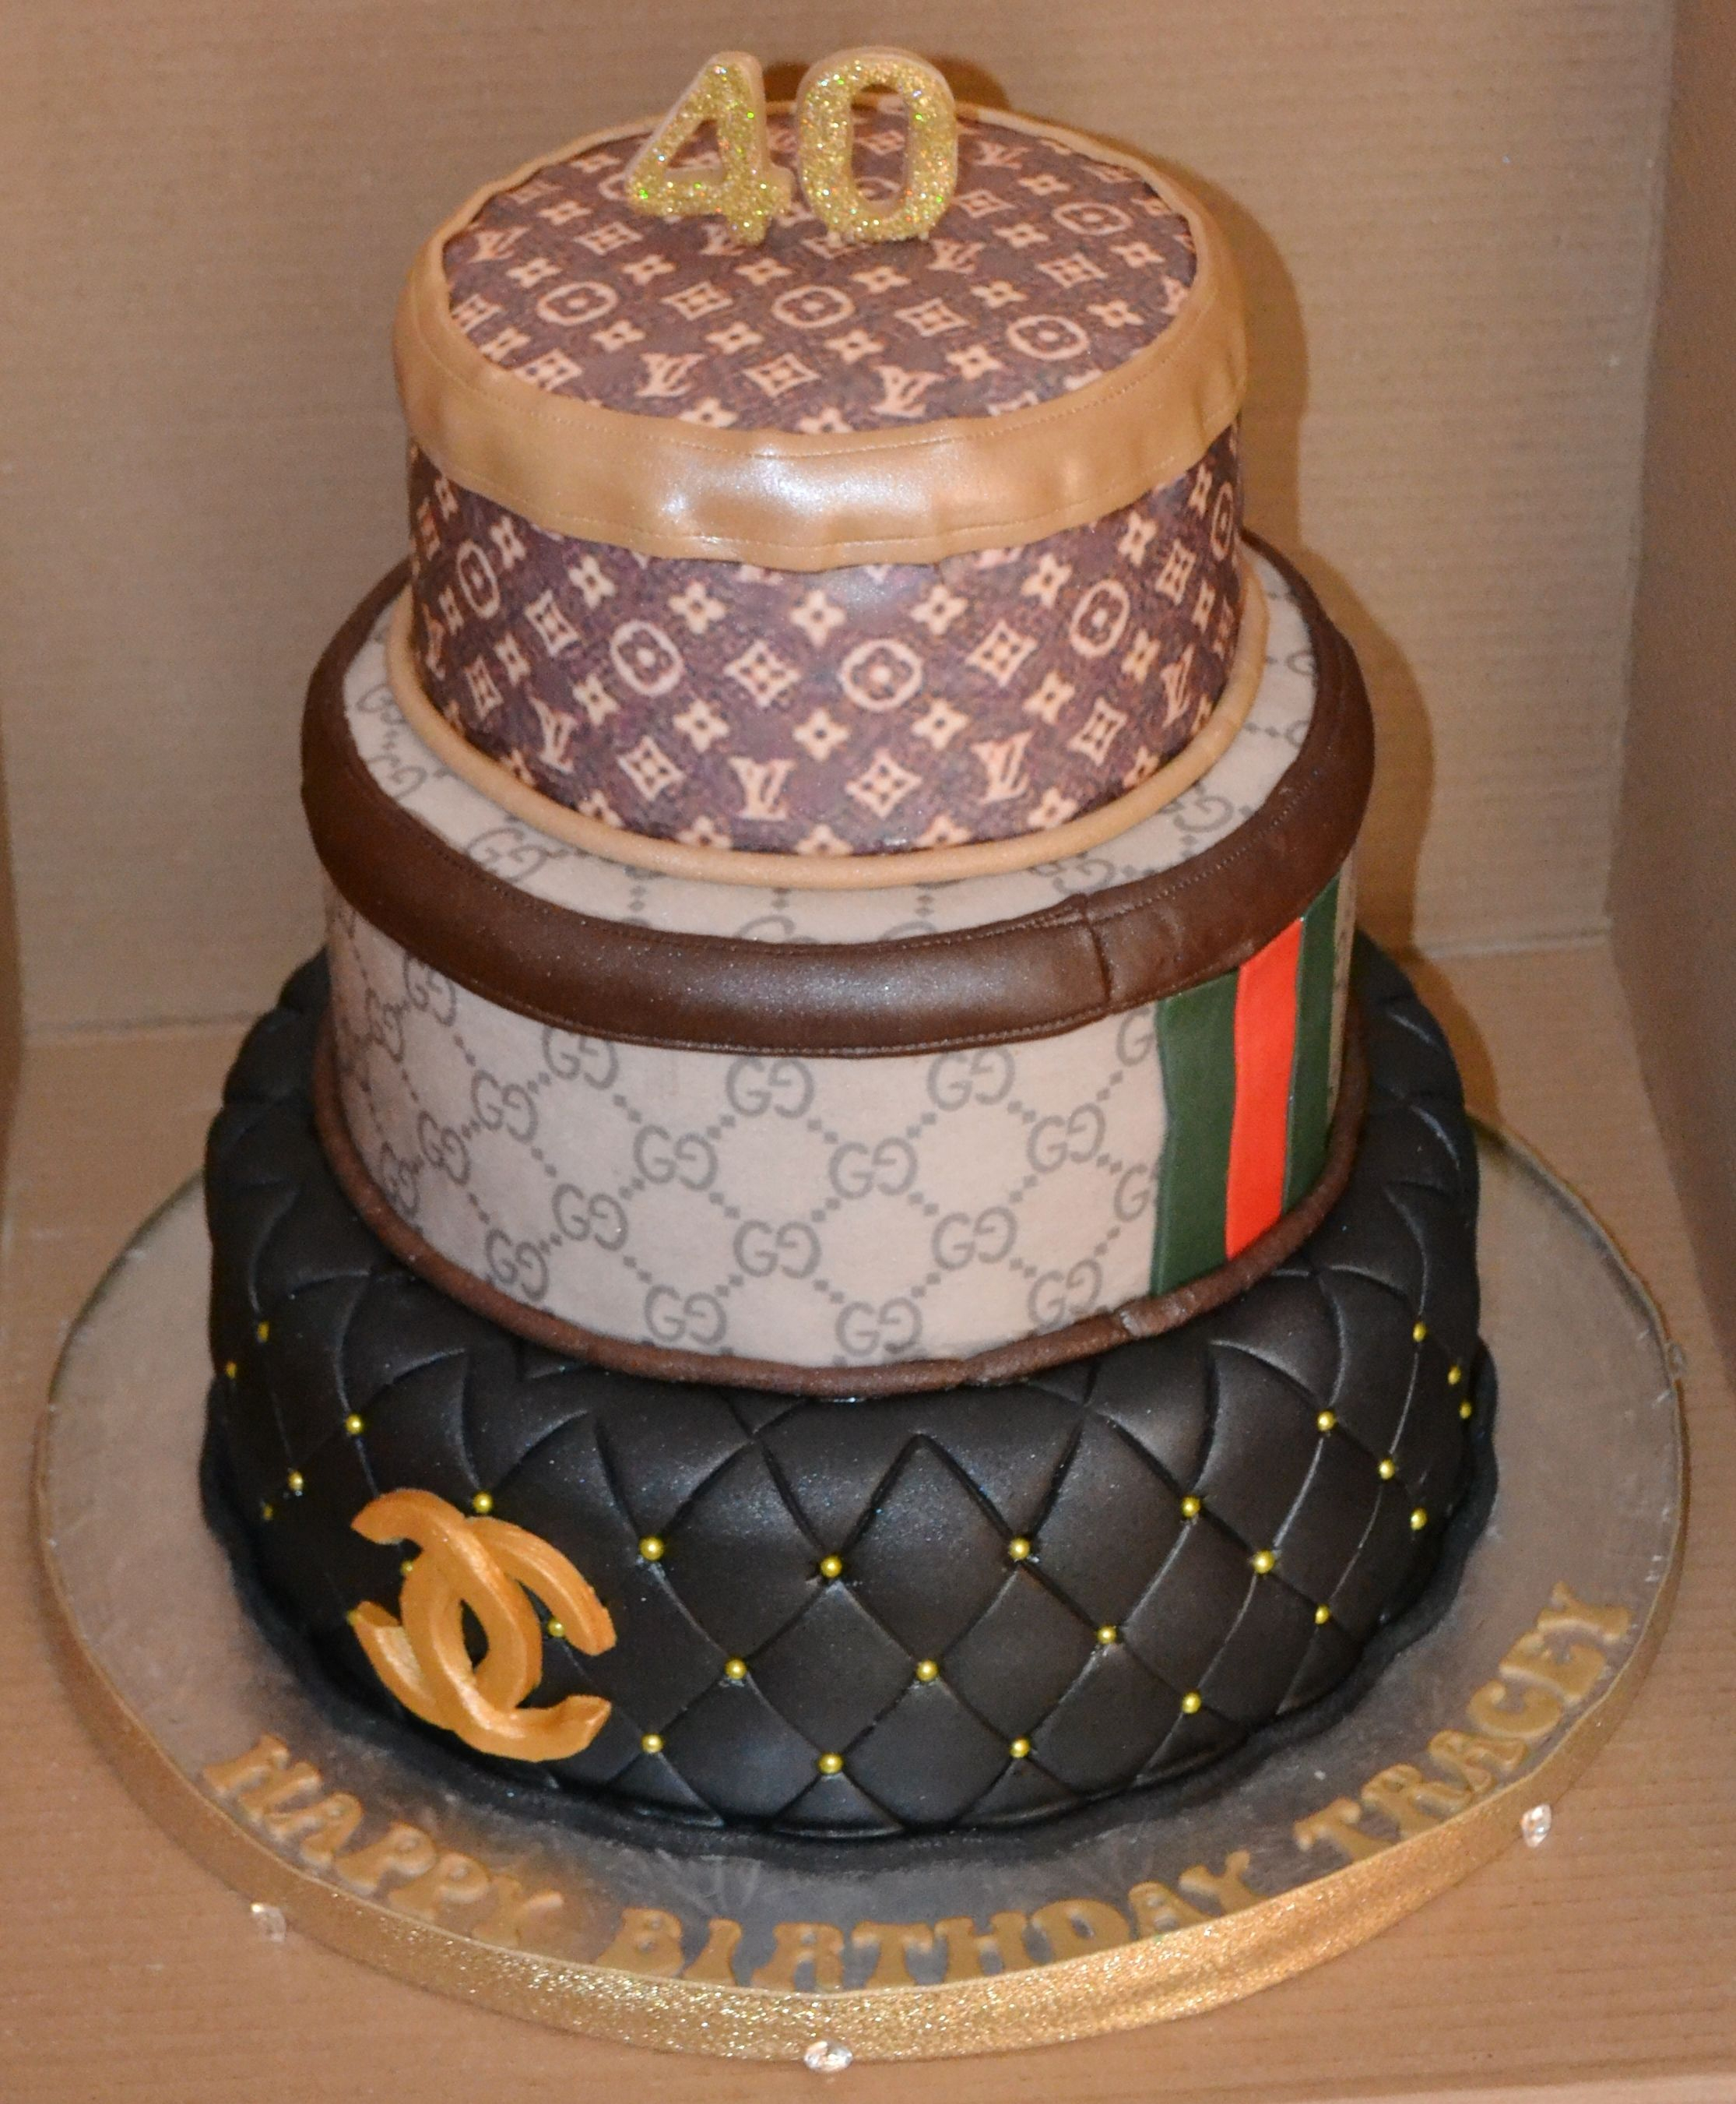 Gucci Birthday Cake Chanel Gucci And Louis Vuitton 3 Tier Cake Great Birthday Cake